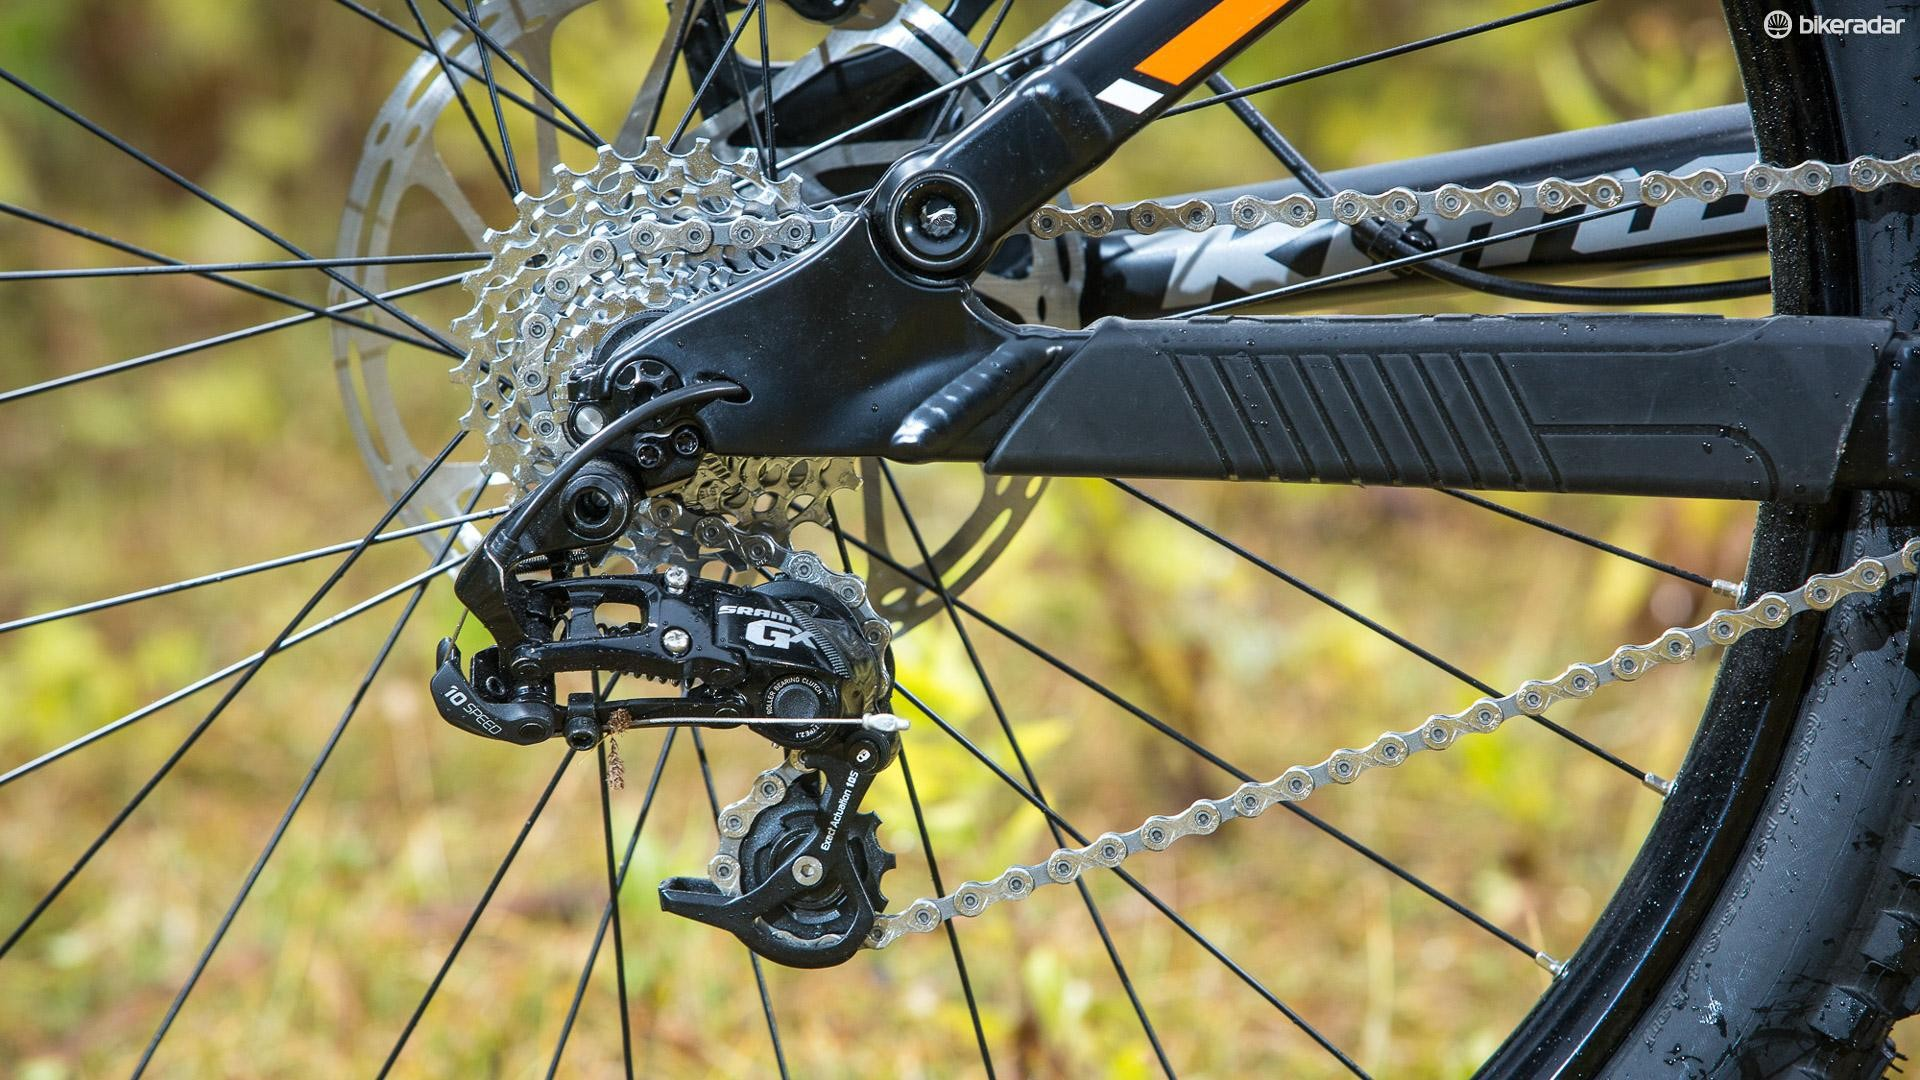 A SRAM GX 10spd set up provides the transmission